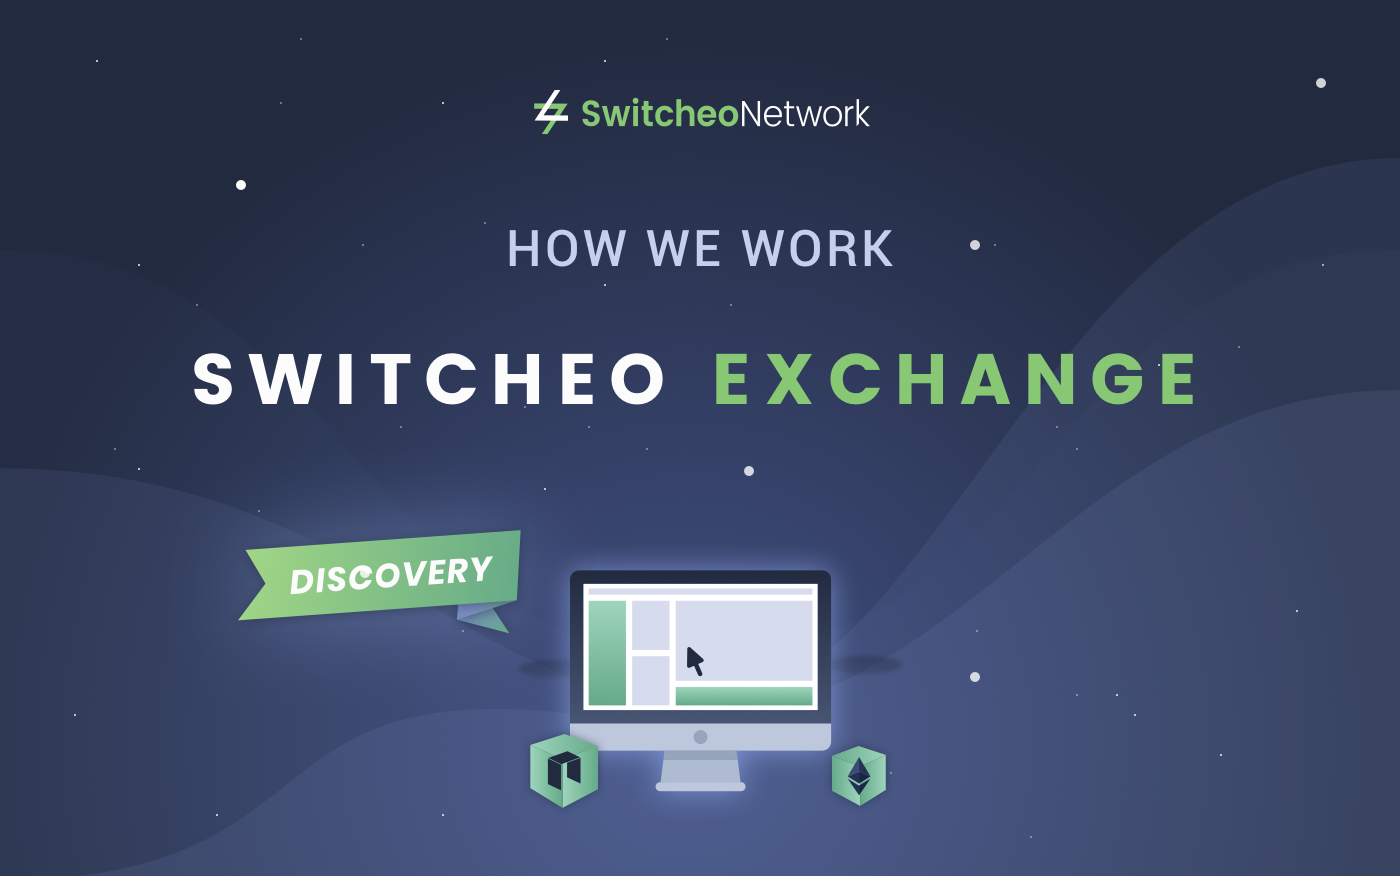 Switcheo Discovery: How Switcheo Exchange Works Part 1